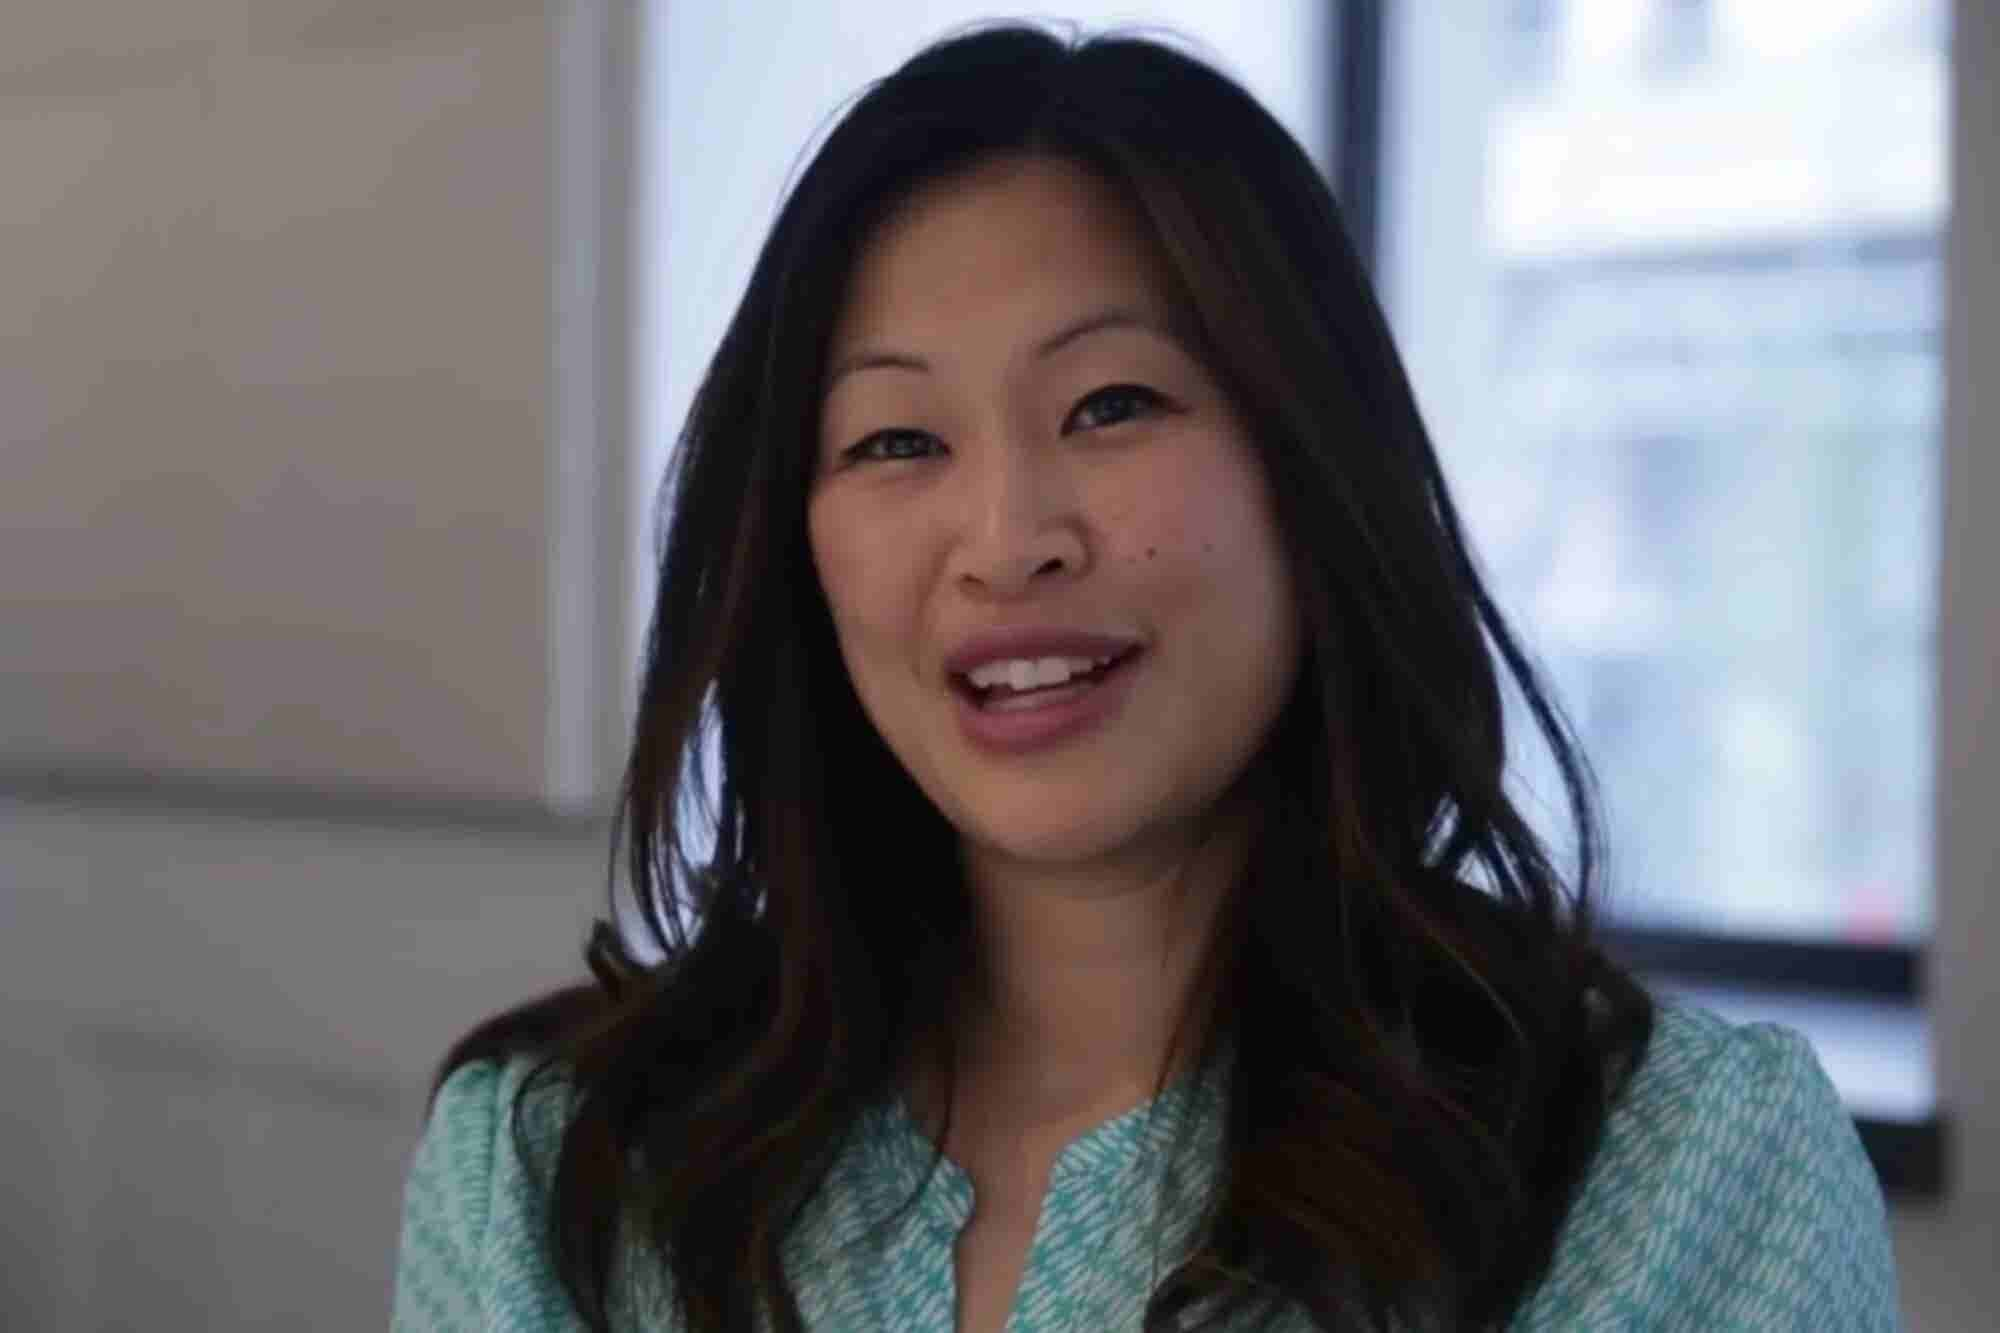 This Co-Founder Used Her Corporate Maternity Leave to Assess Her Career Goals -- Which Led Her to the Startup World